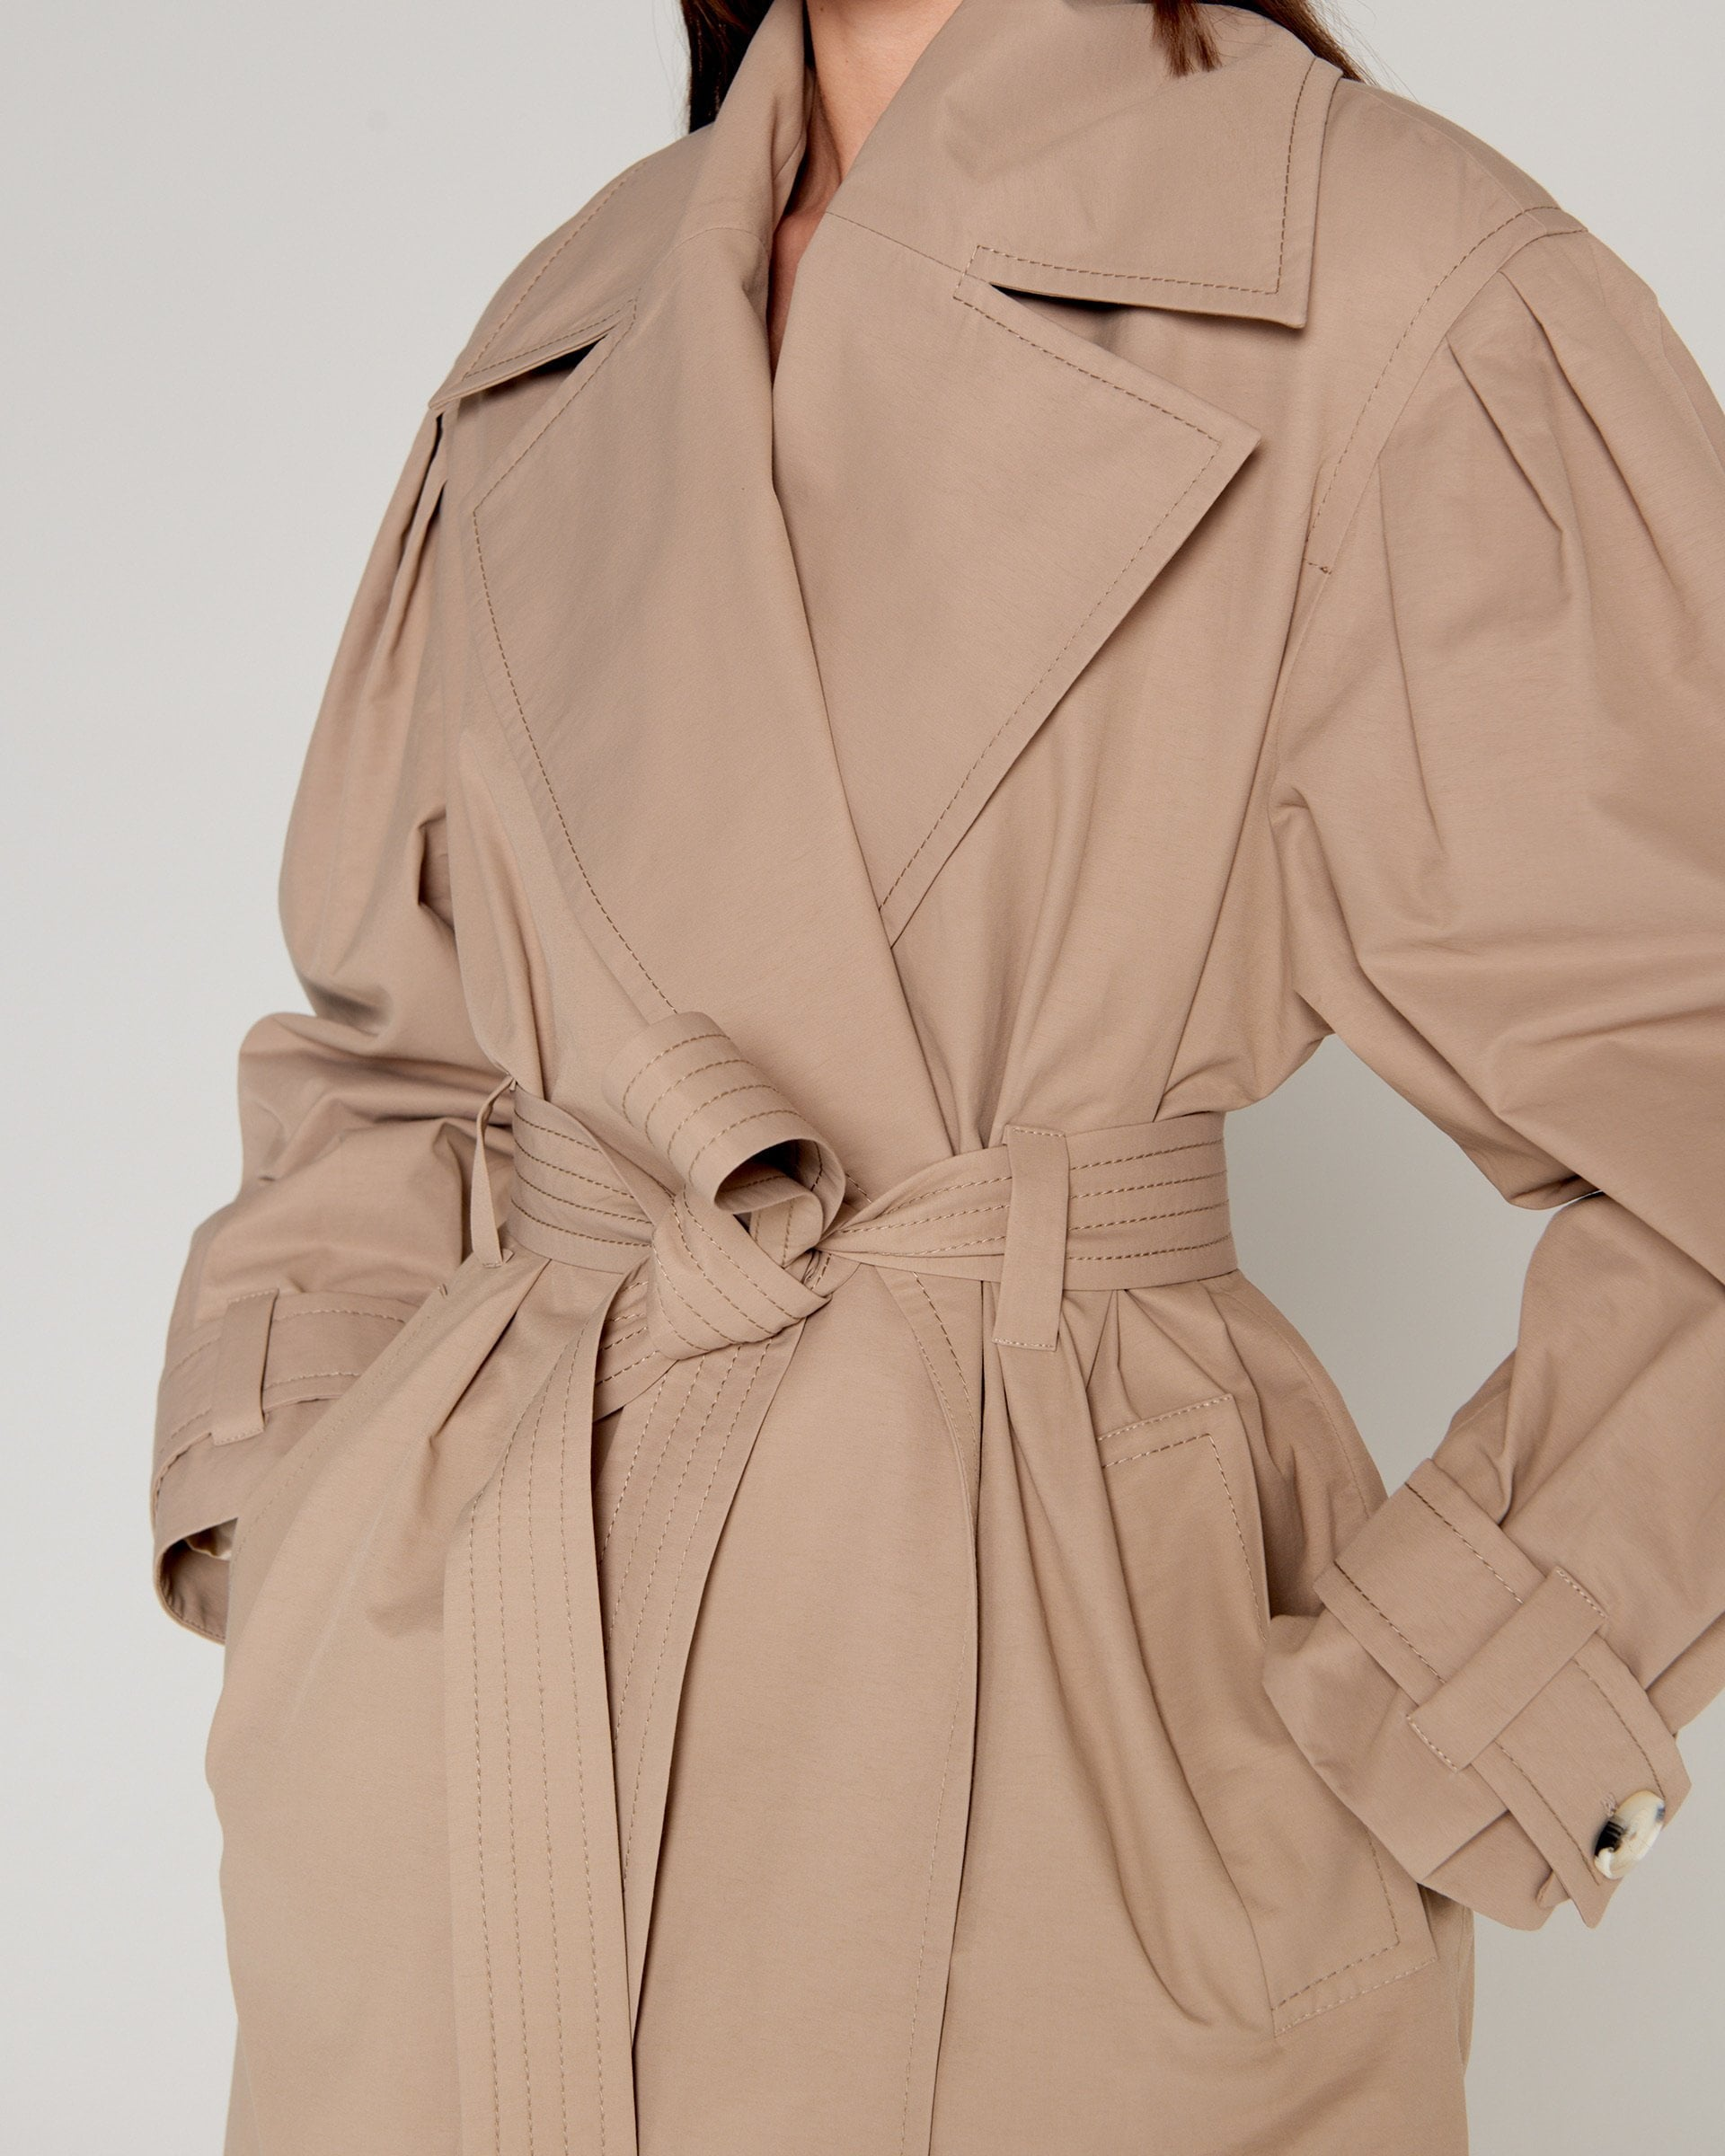 80's Trench Coat Nude